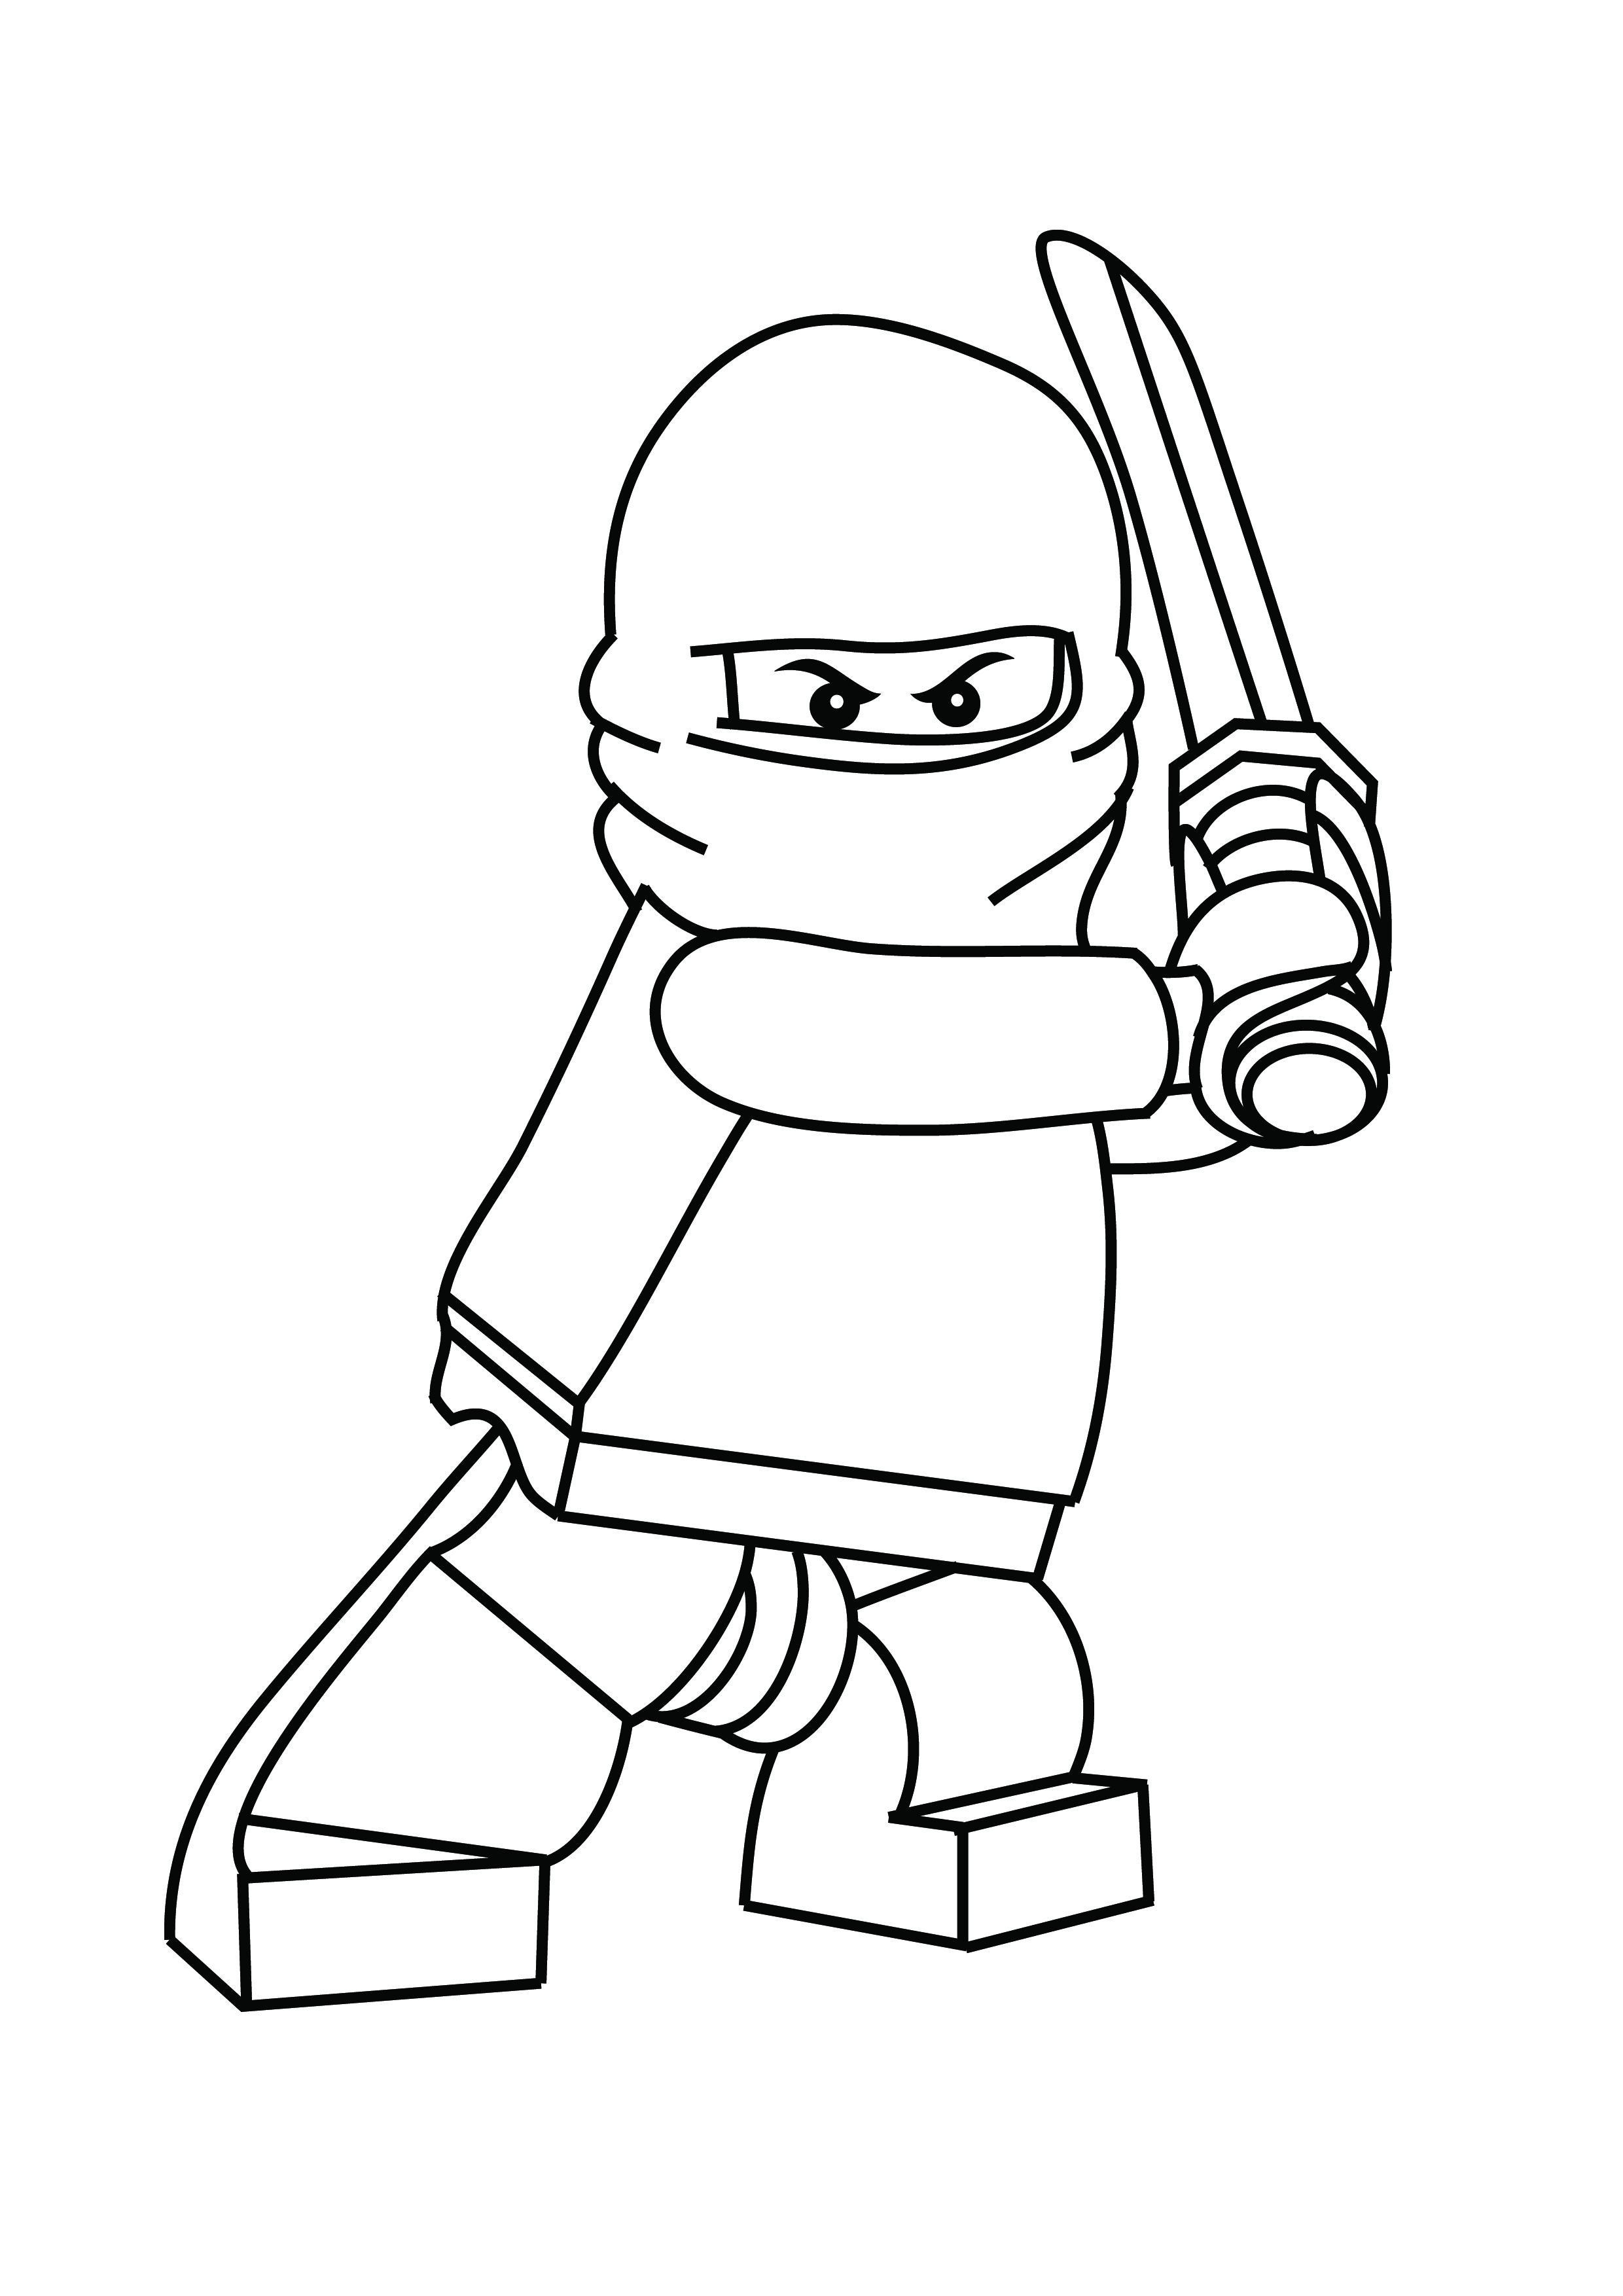 lego colouring in pages lego ninjago coloring pages best coloring pages for kids pages colouring in lego